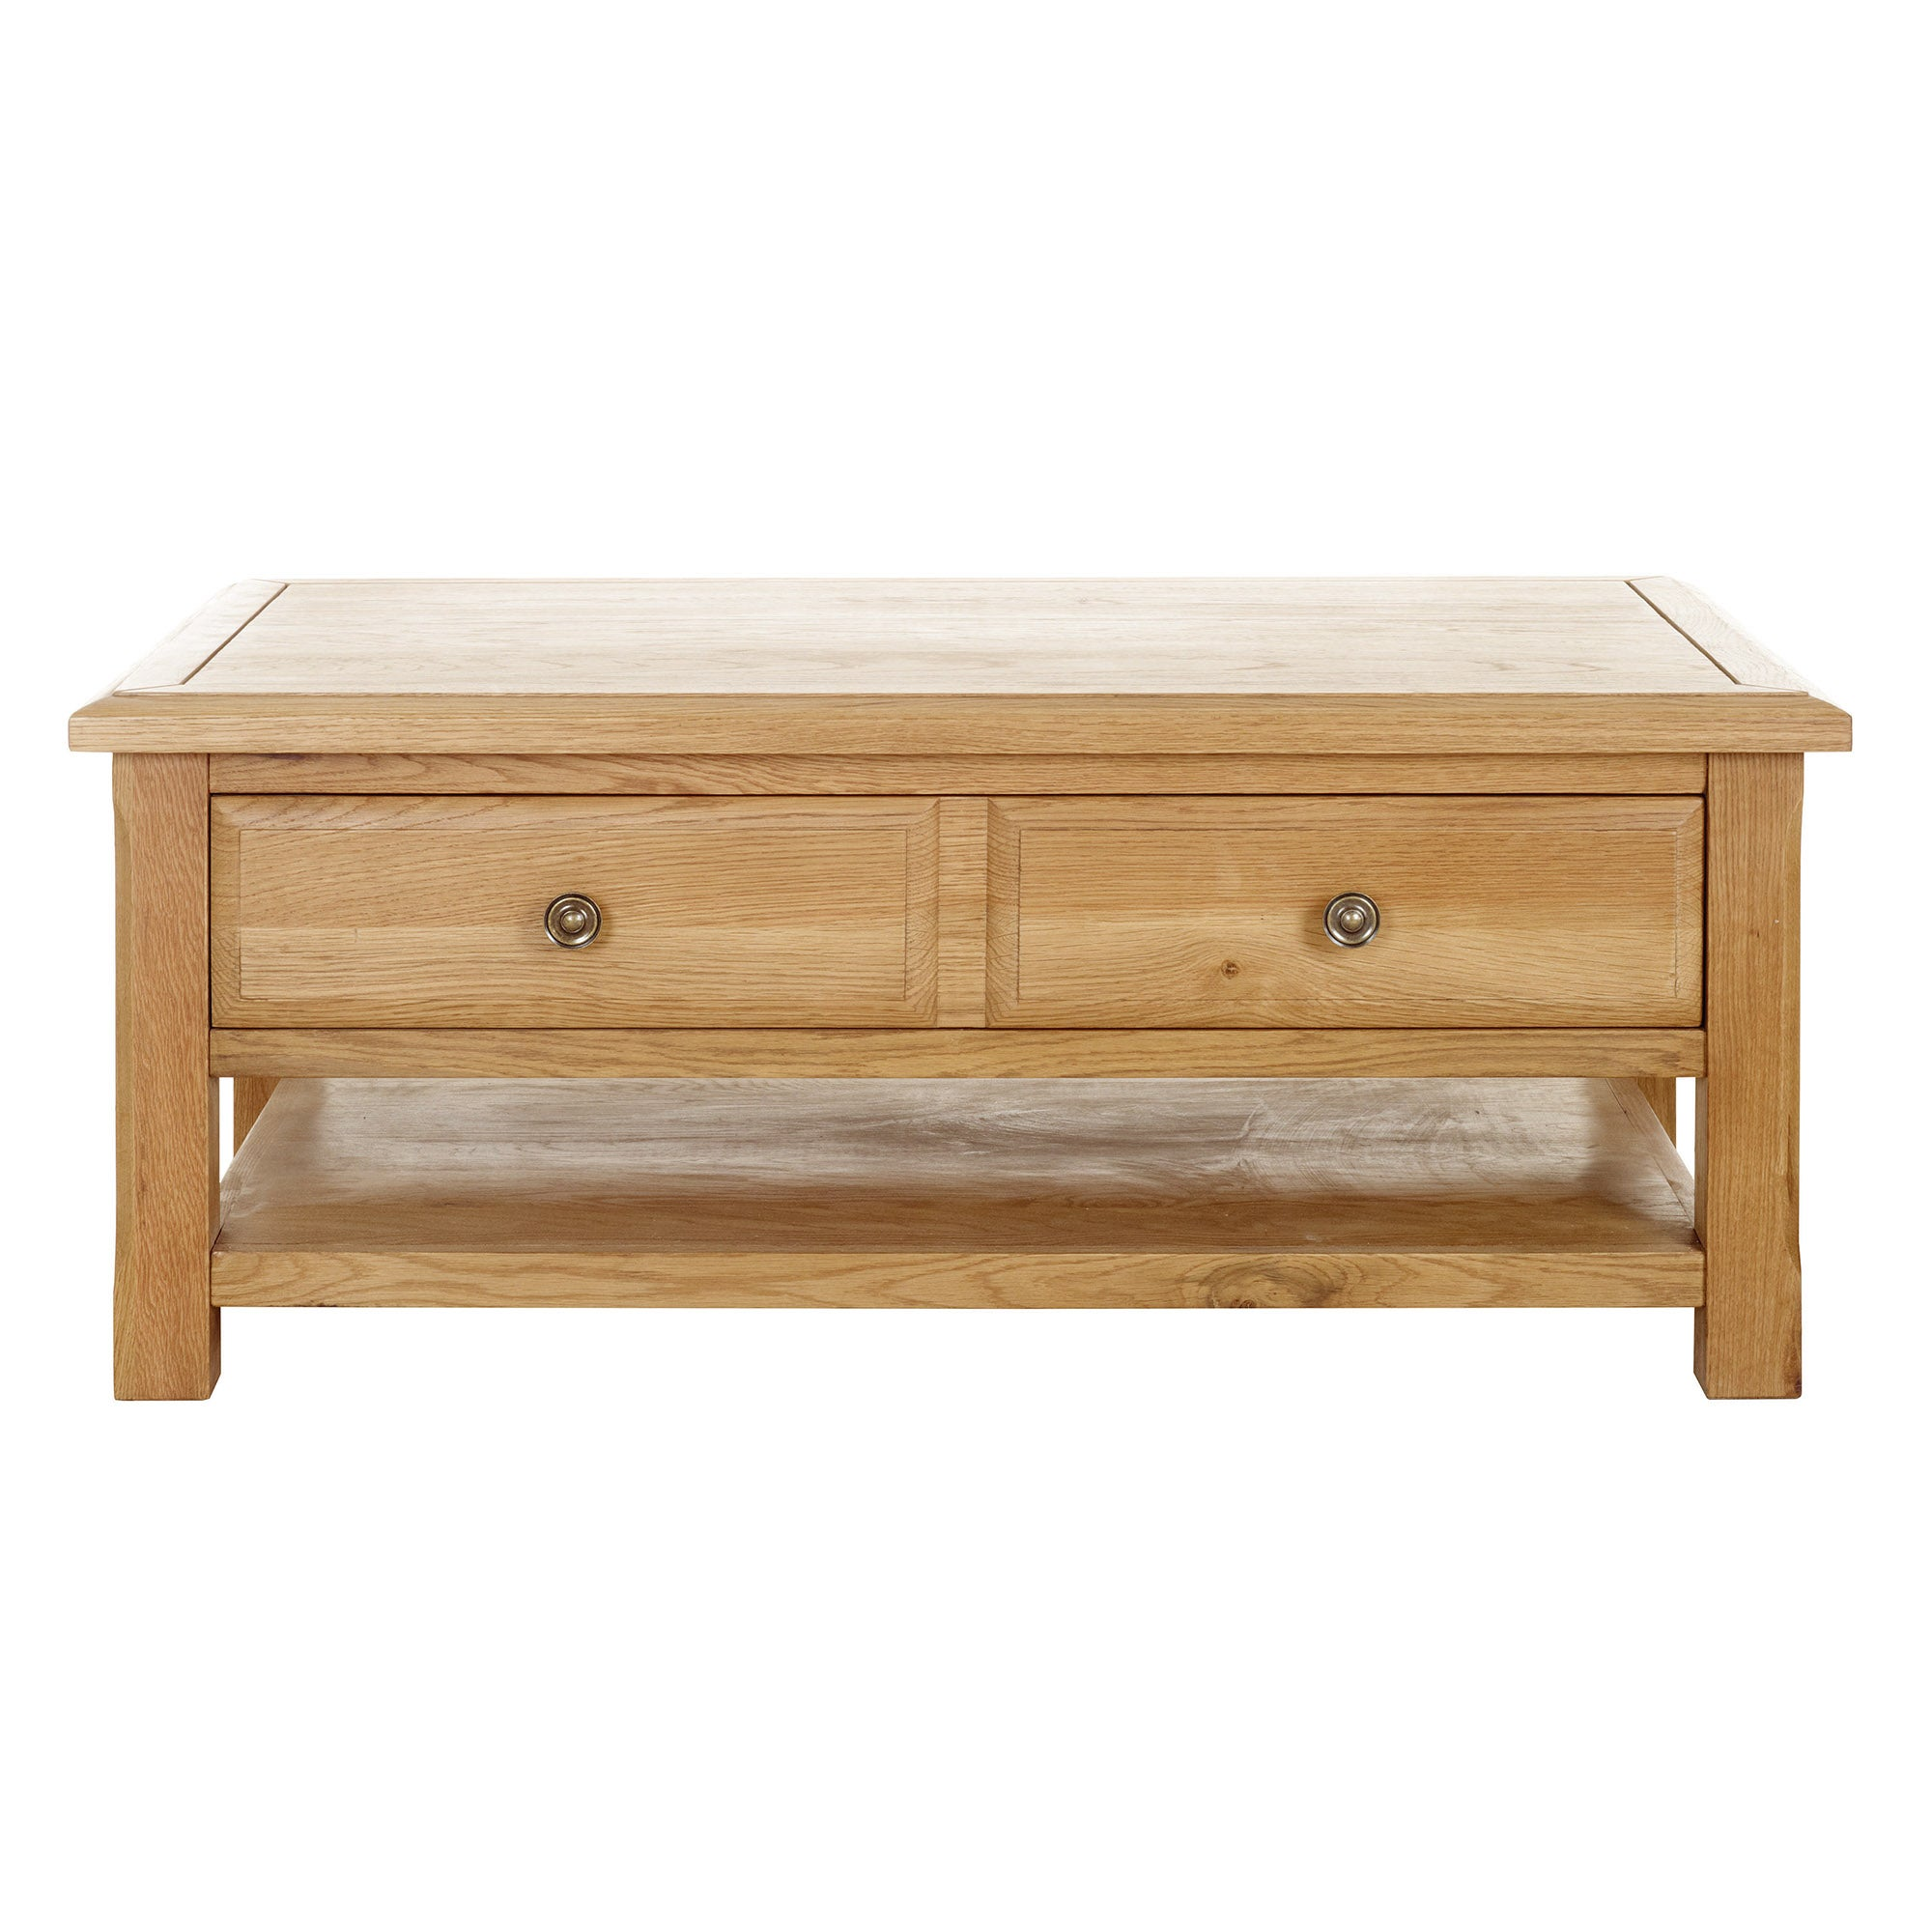 Gainsborough Oak Large Coffee Table